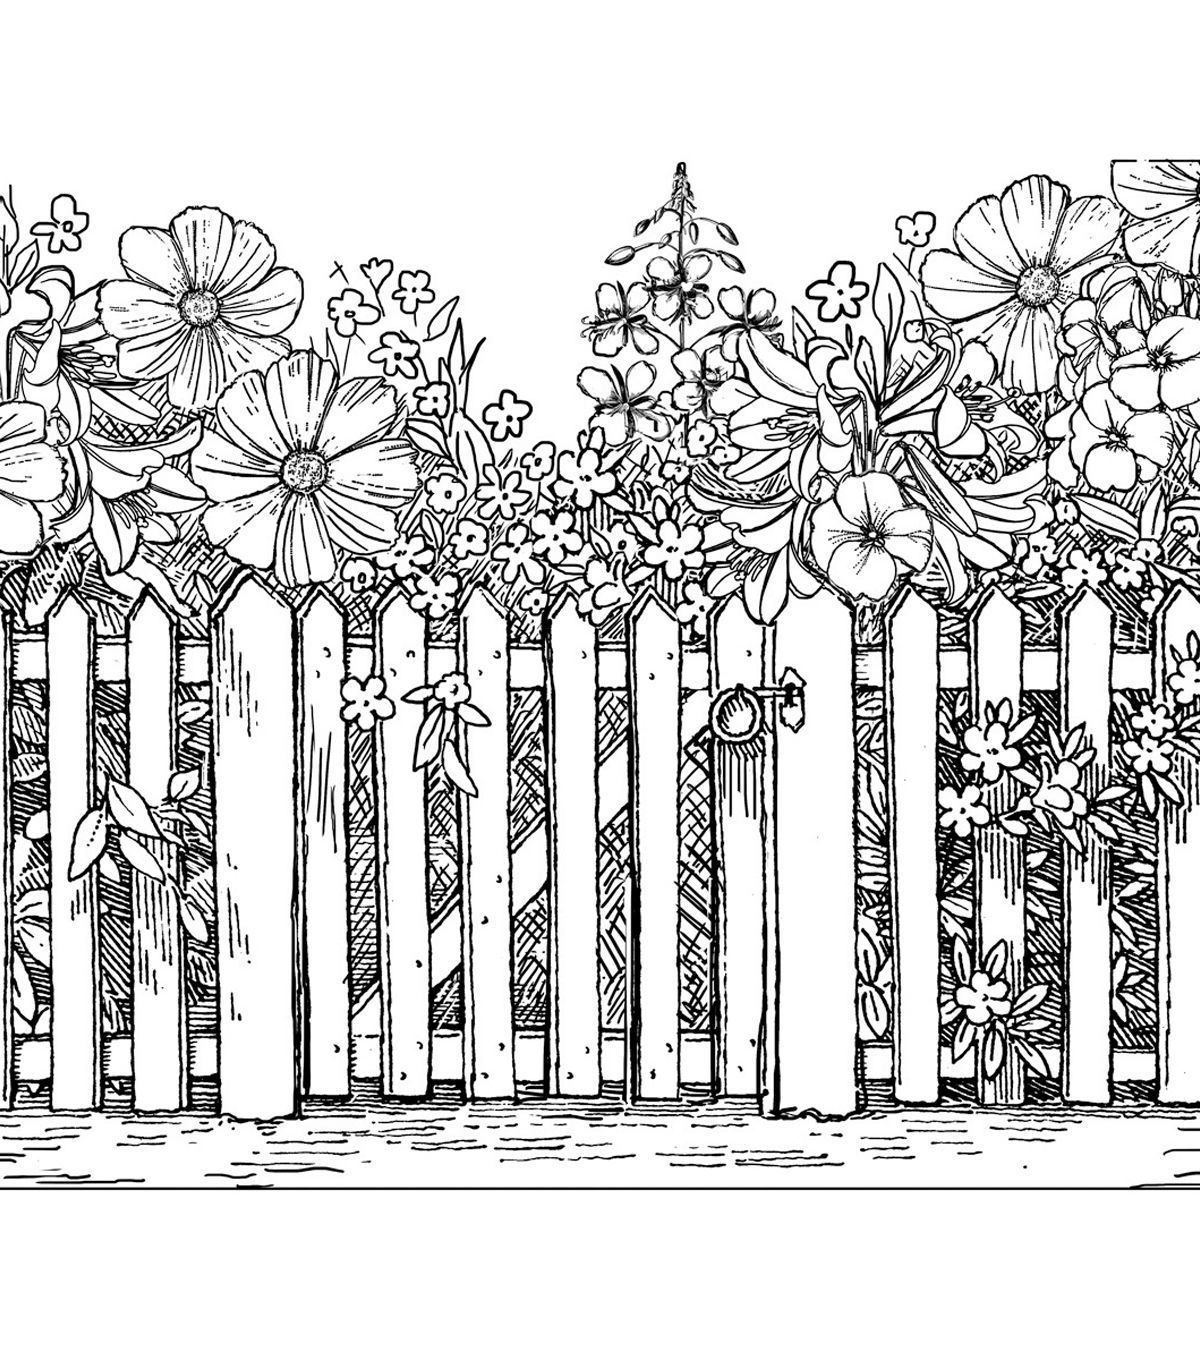 Crafty Individuals Beyond The Picket Fence Unmounted Rubber Stamp Coloring Pages Coloring Pictures Coloring Books [ 1360 x 1200 Pixel ]